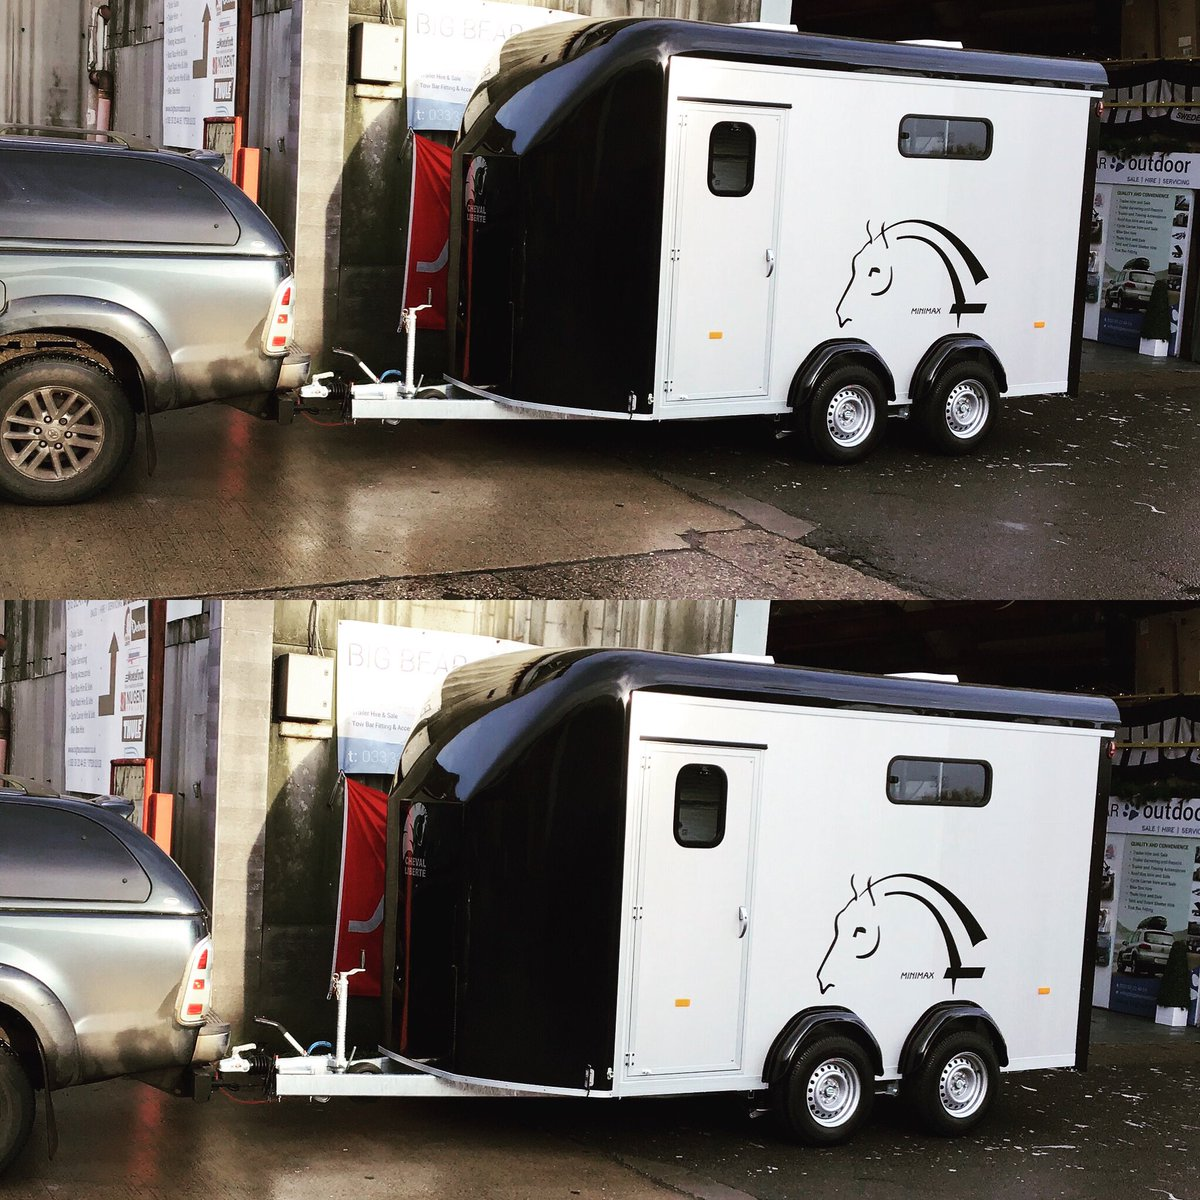 Another Stunning Cheval Liberte Minimax (3 horse trailer) leaving us today - What a Beauty ! #chevalliberté #chevalliberte #minimax #chevalliberteminimax #horsetrailer #besthorsetrailer #trailers #equestrian #equestrianlife #equestrianstyle #horses #horseshow #ponyclub #oundlepic.twitter.com/FNGBGbzDOD